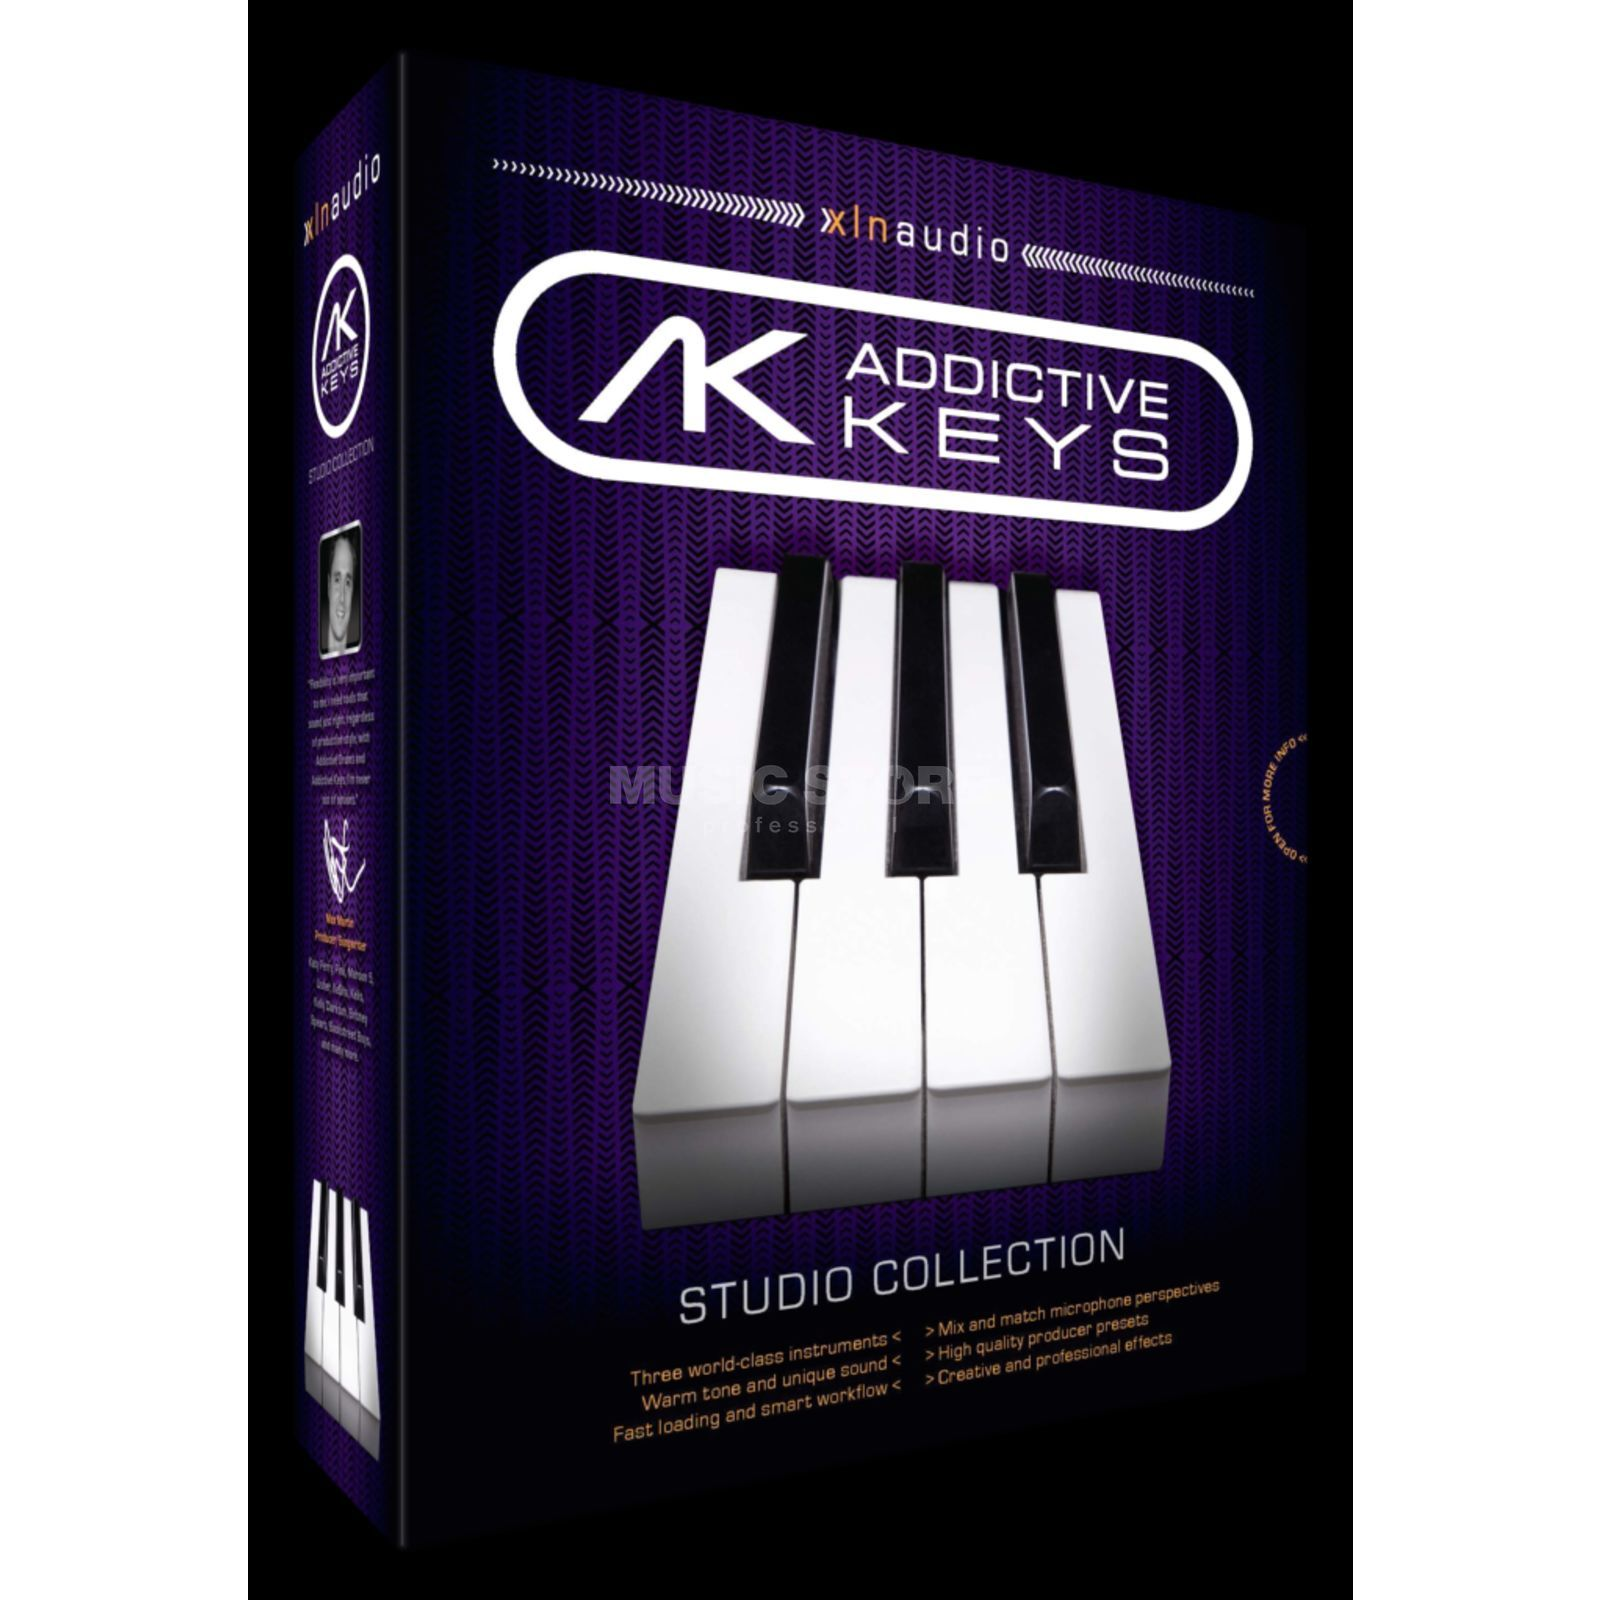 XLN Audio Addictive Keys  Produktbild